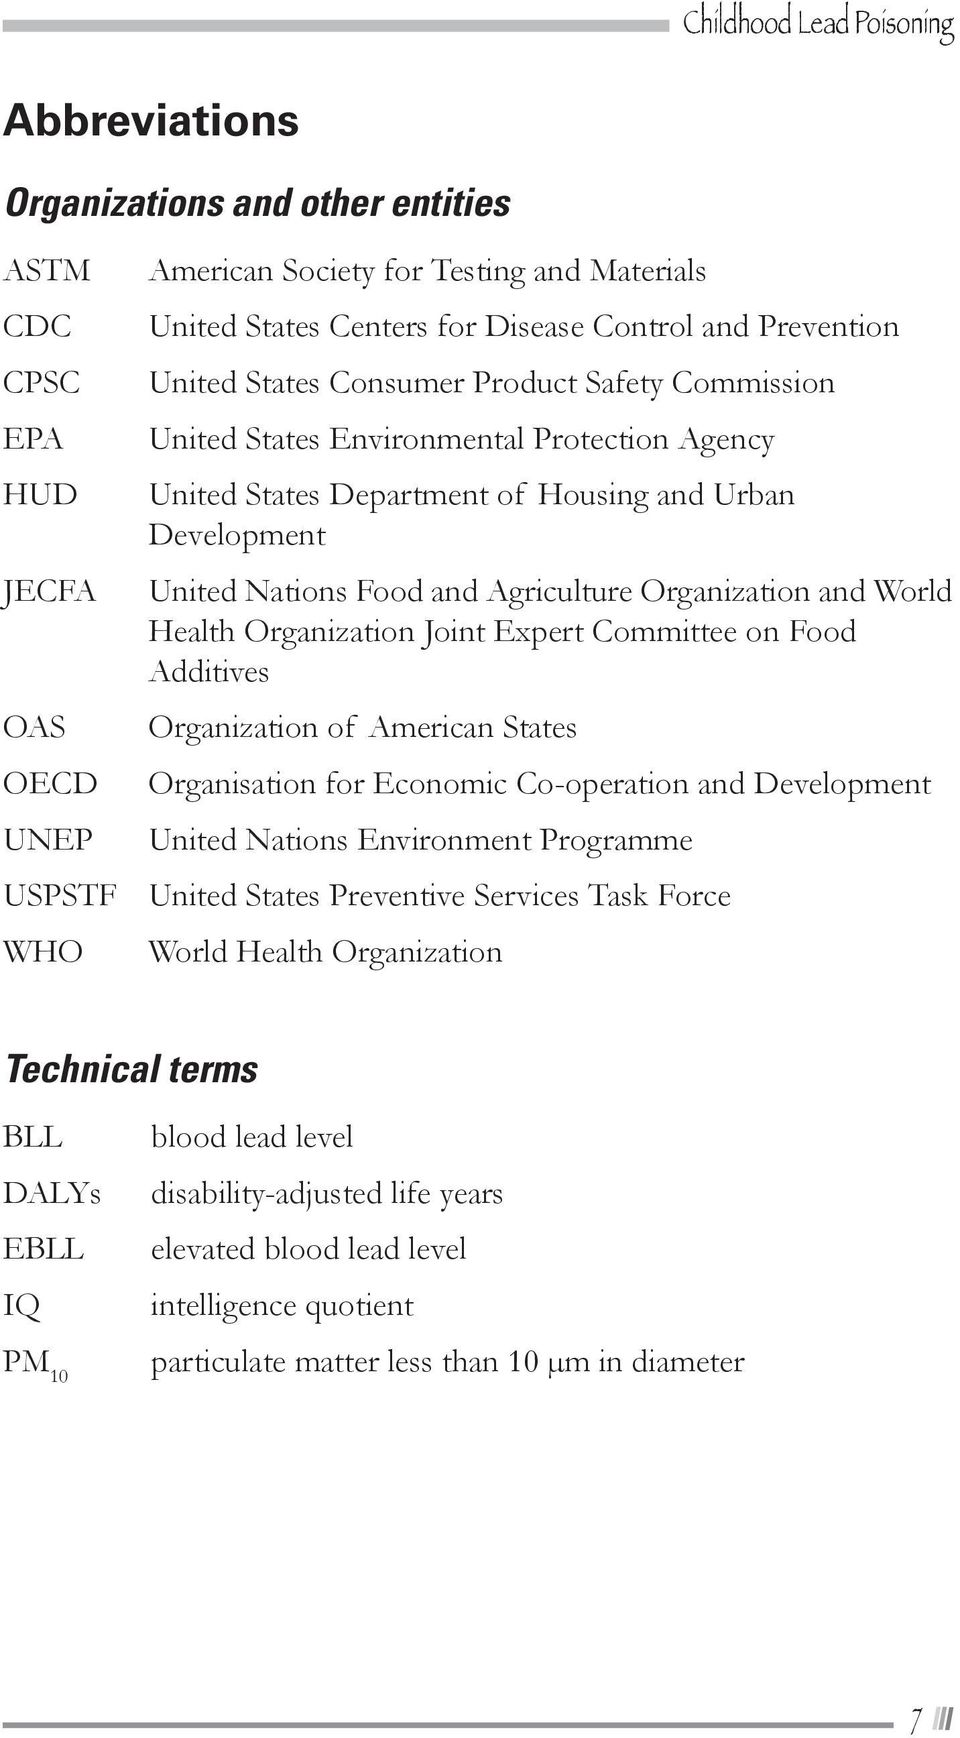 Organization and Word Heath Organization Joint Expert Committee on Food Additives Organization of American States Organisation for Economic Co-operation and Deveopment United Nations Environment